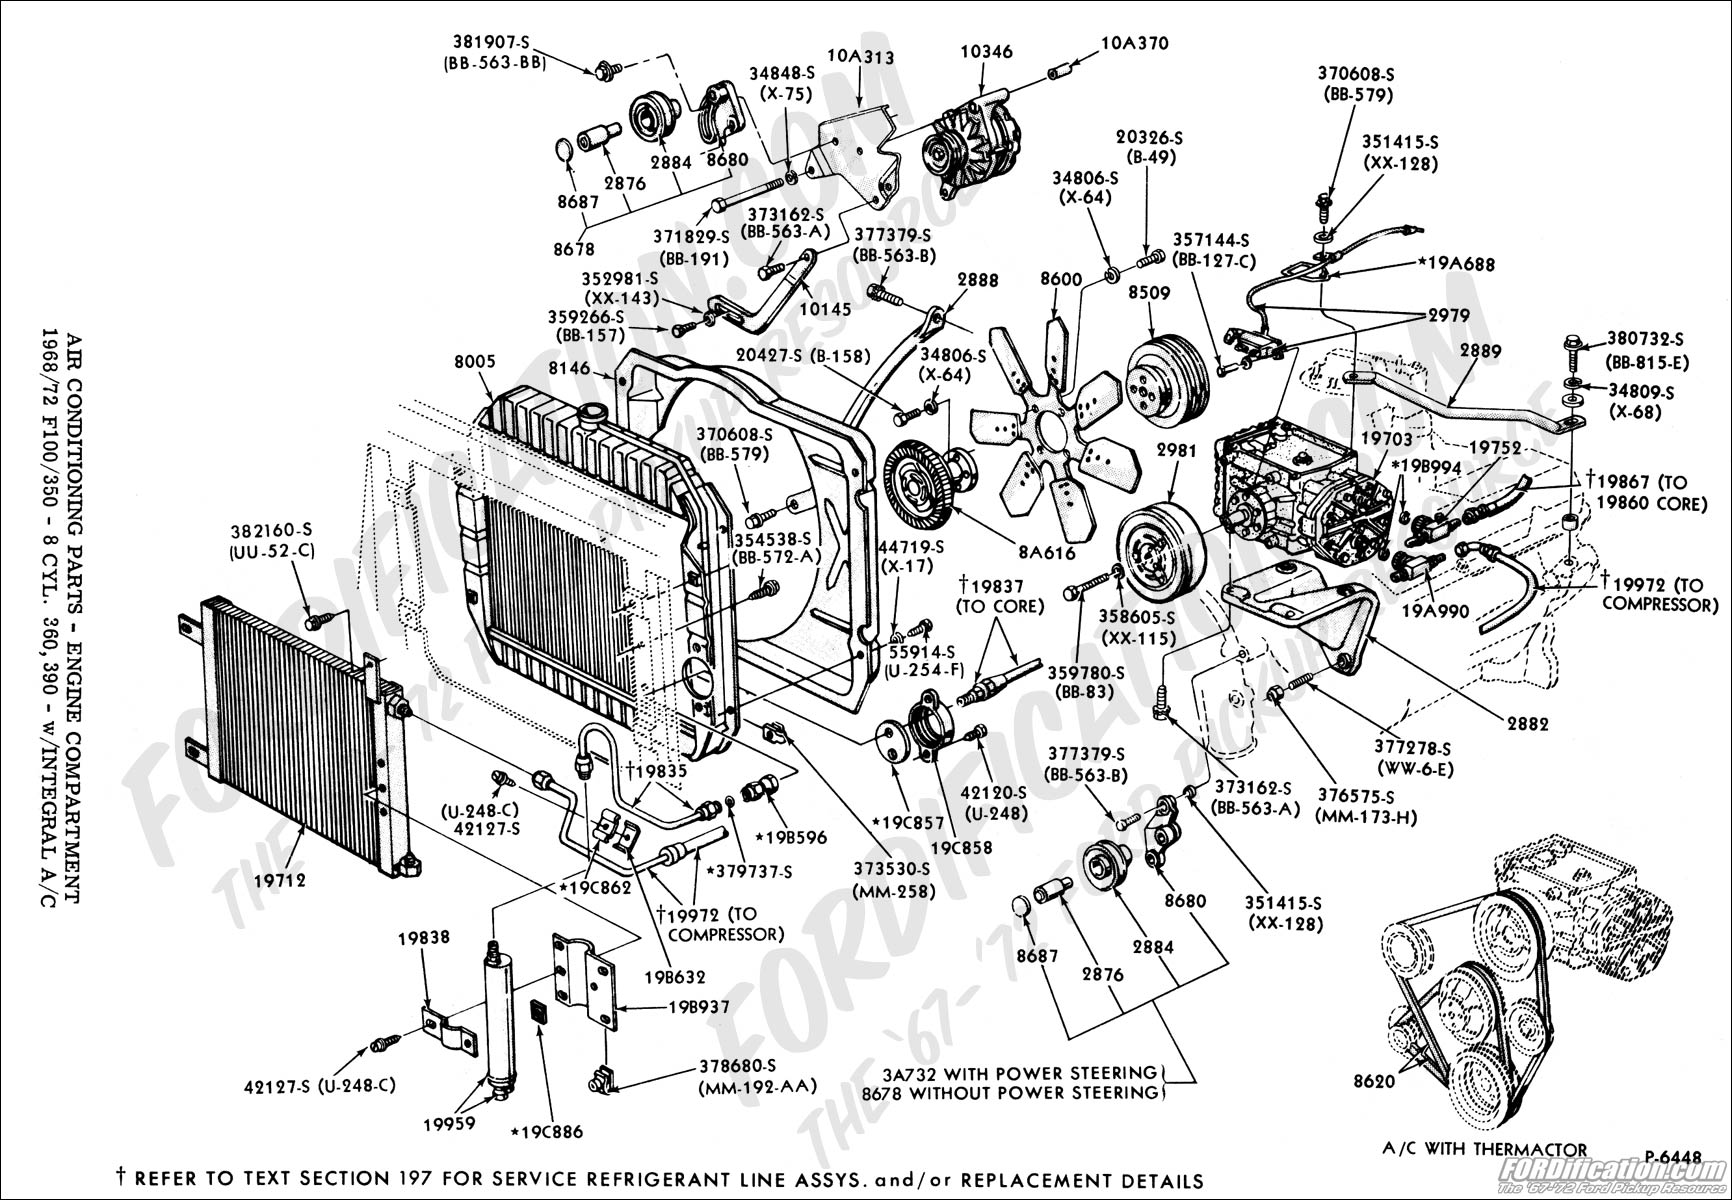 F 250 Parts Diagram Unlimited Access To Wiring Information 350 Chevy Engine 2003 Ford Third Level Rh 15 9 Jacobwinterstein Com 2500